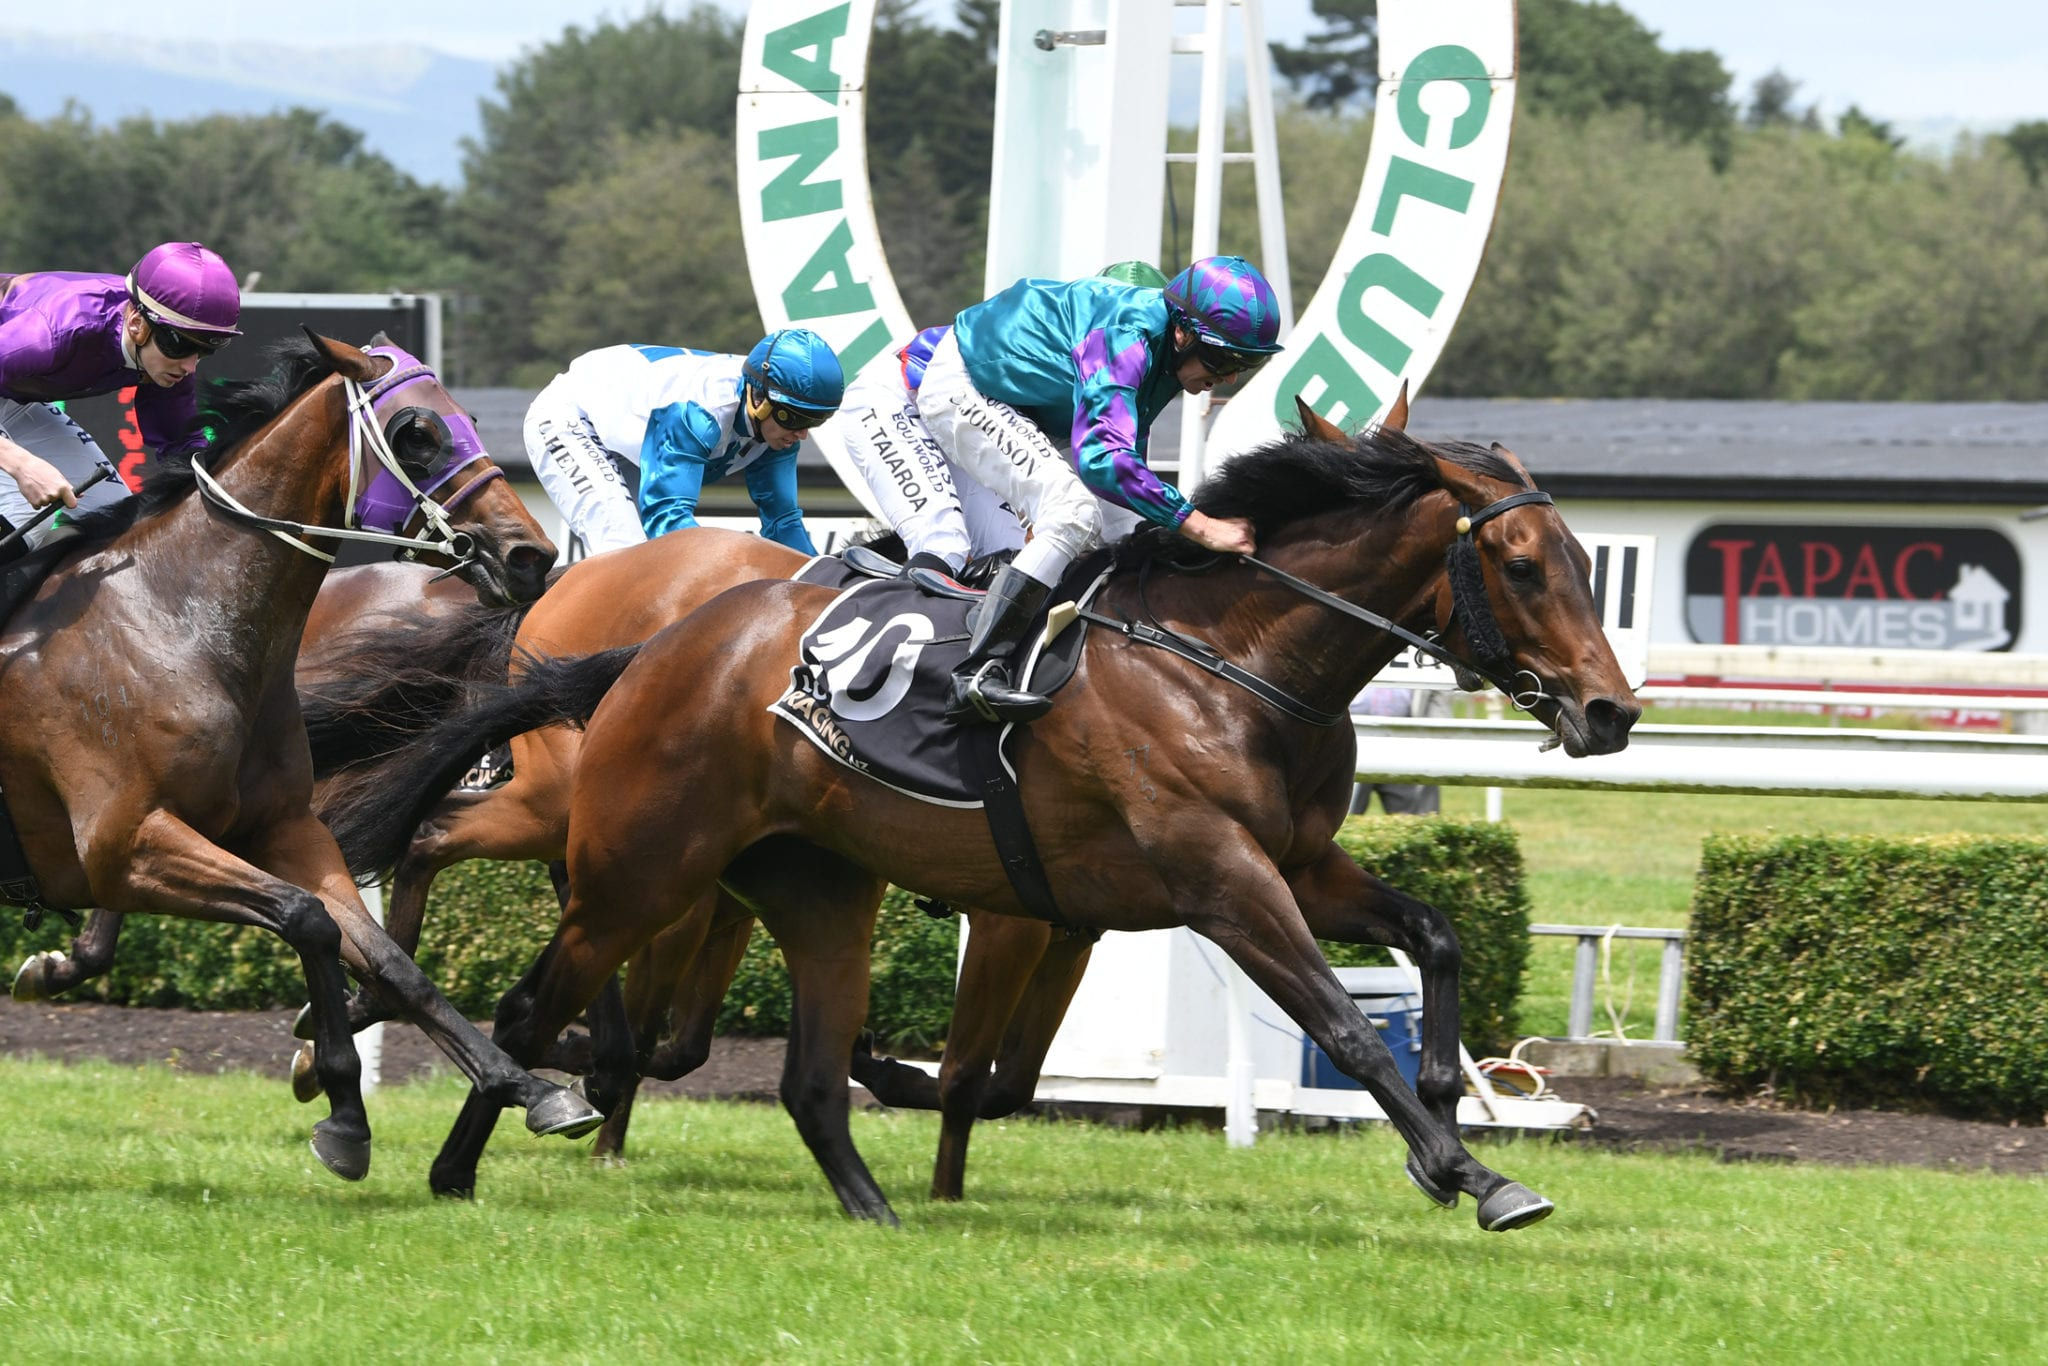 Nz 1000 guineas betting betting odds super bowl safety first score